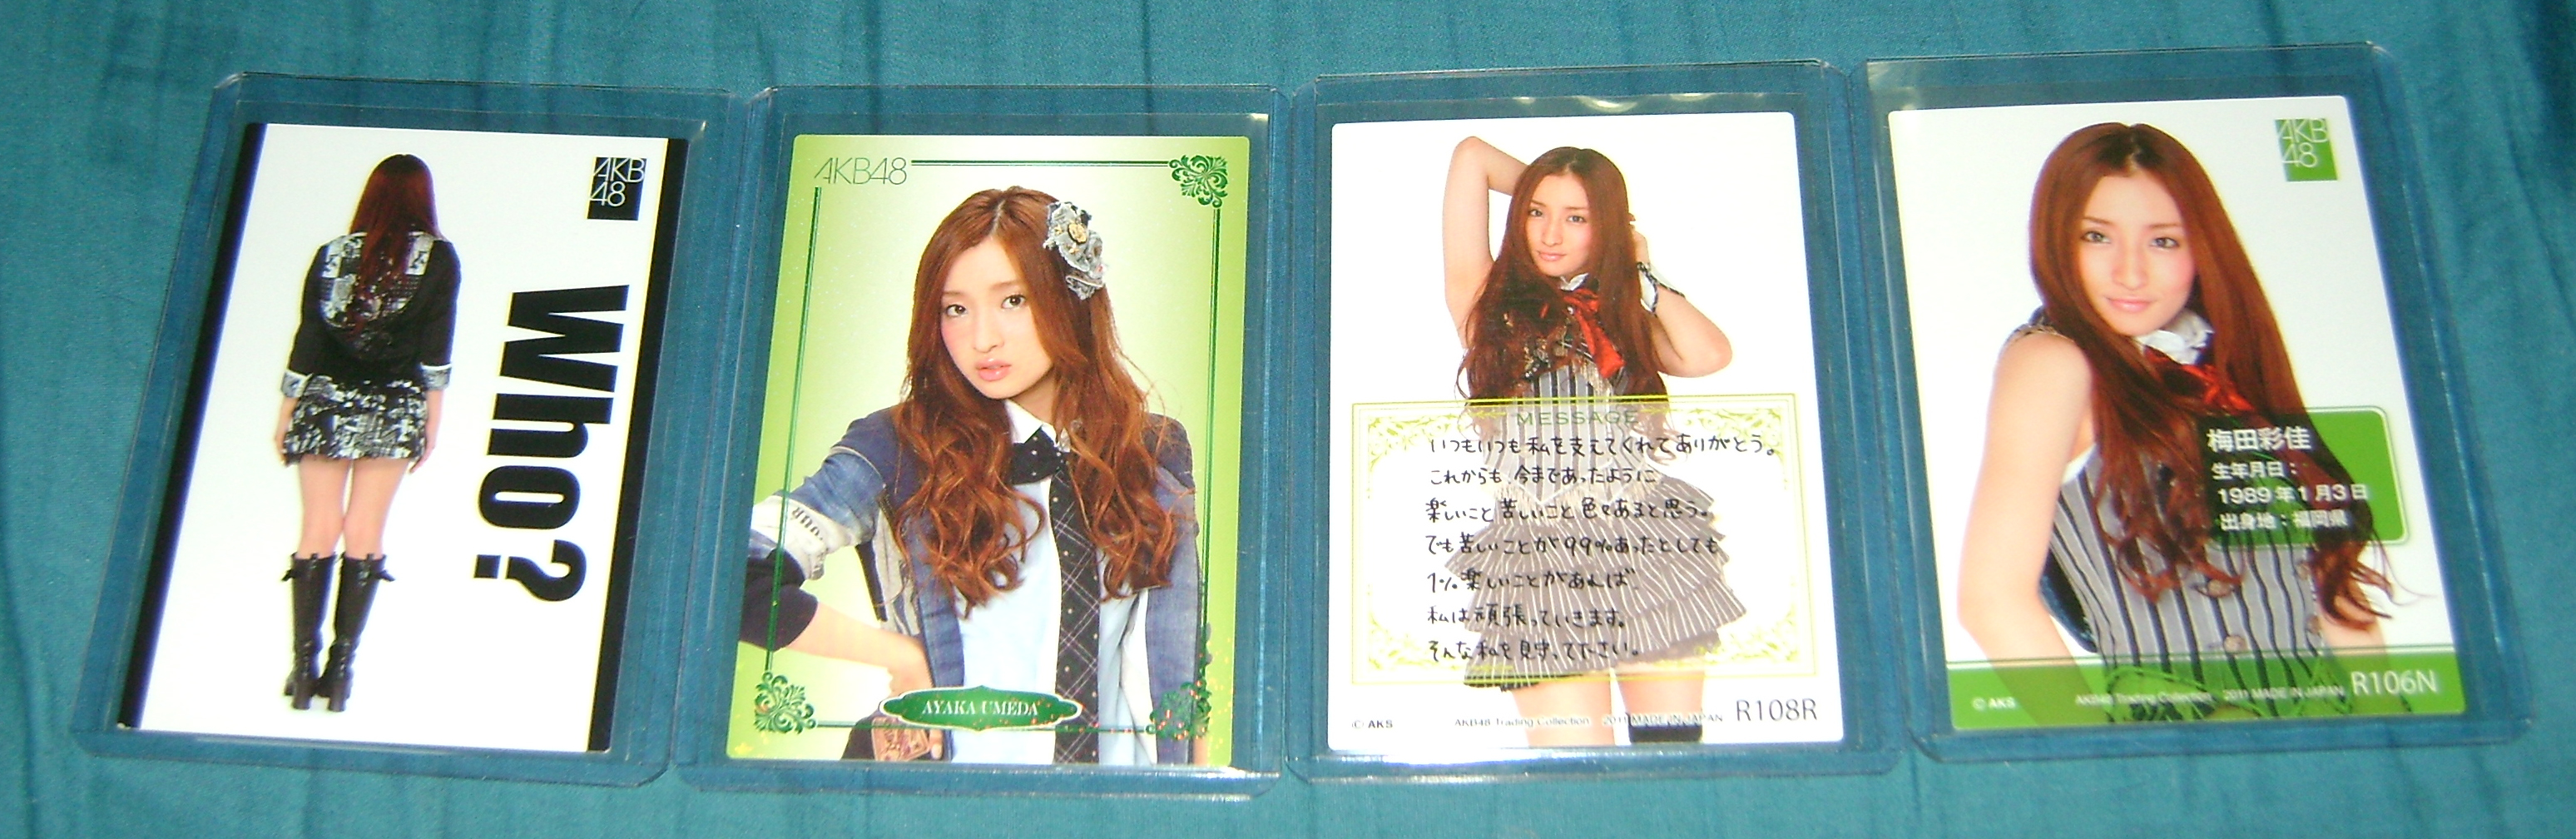 Ayaka cards 2 AKB48, A Musical Collection; Part 5!